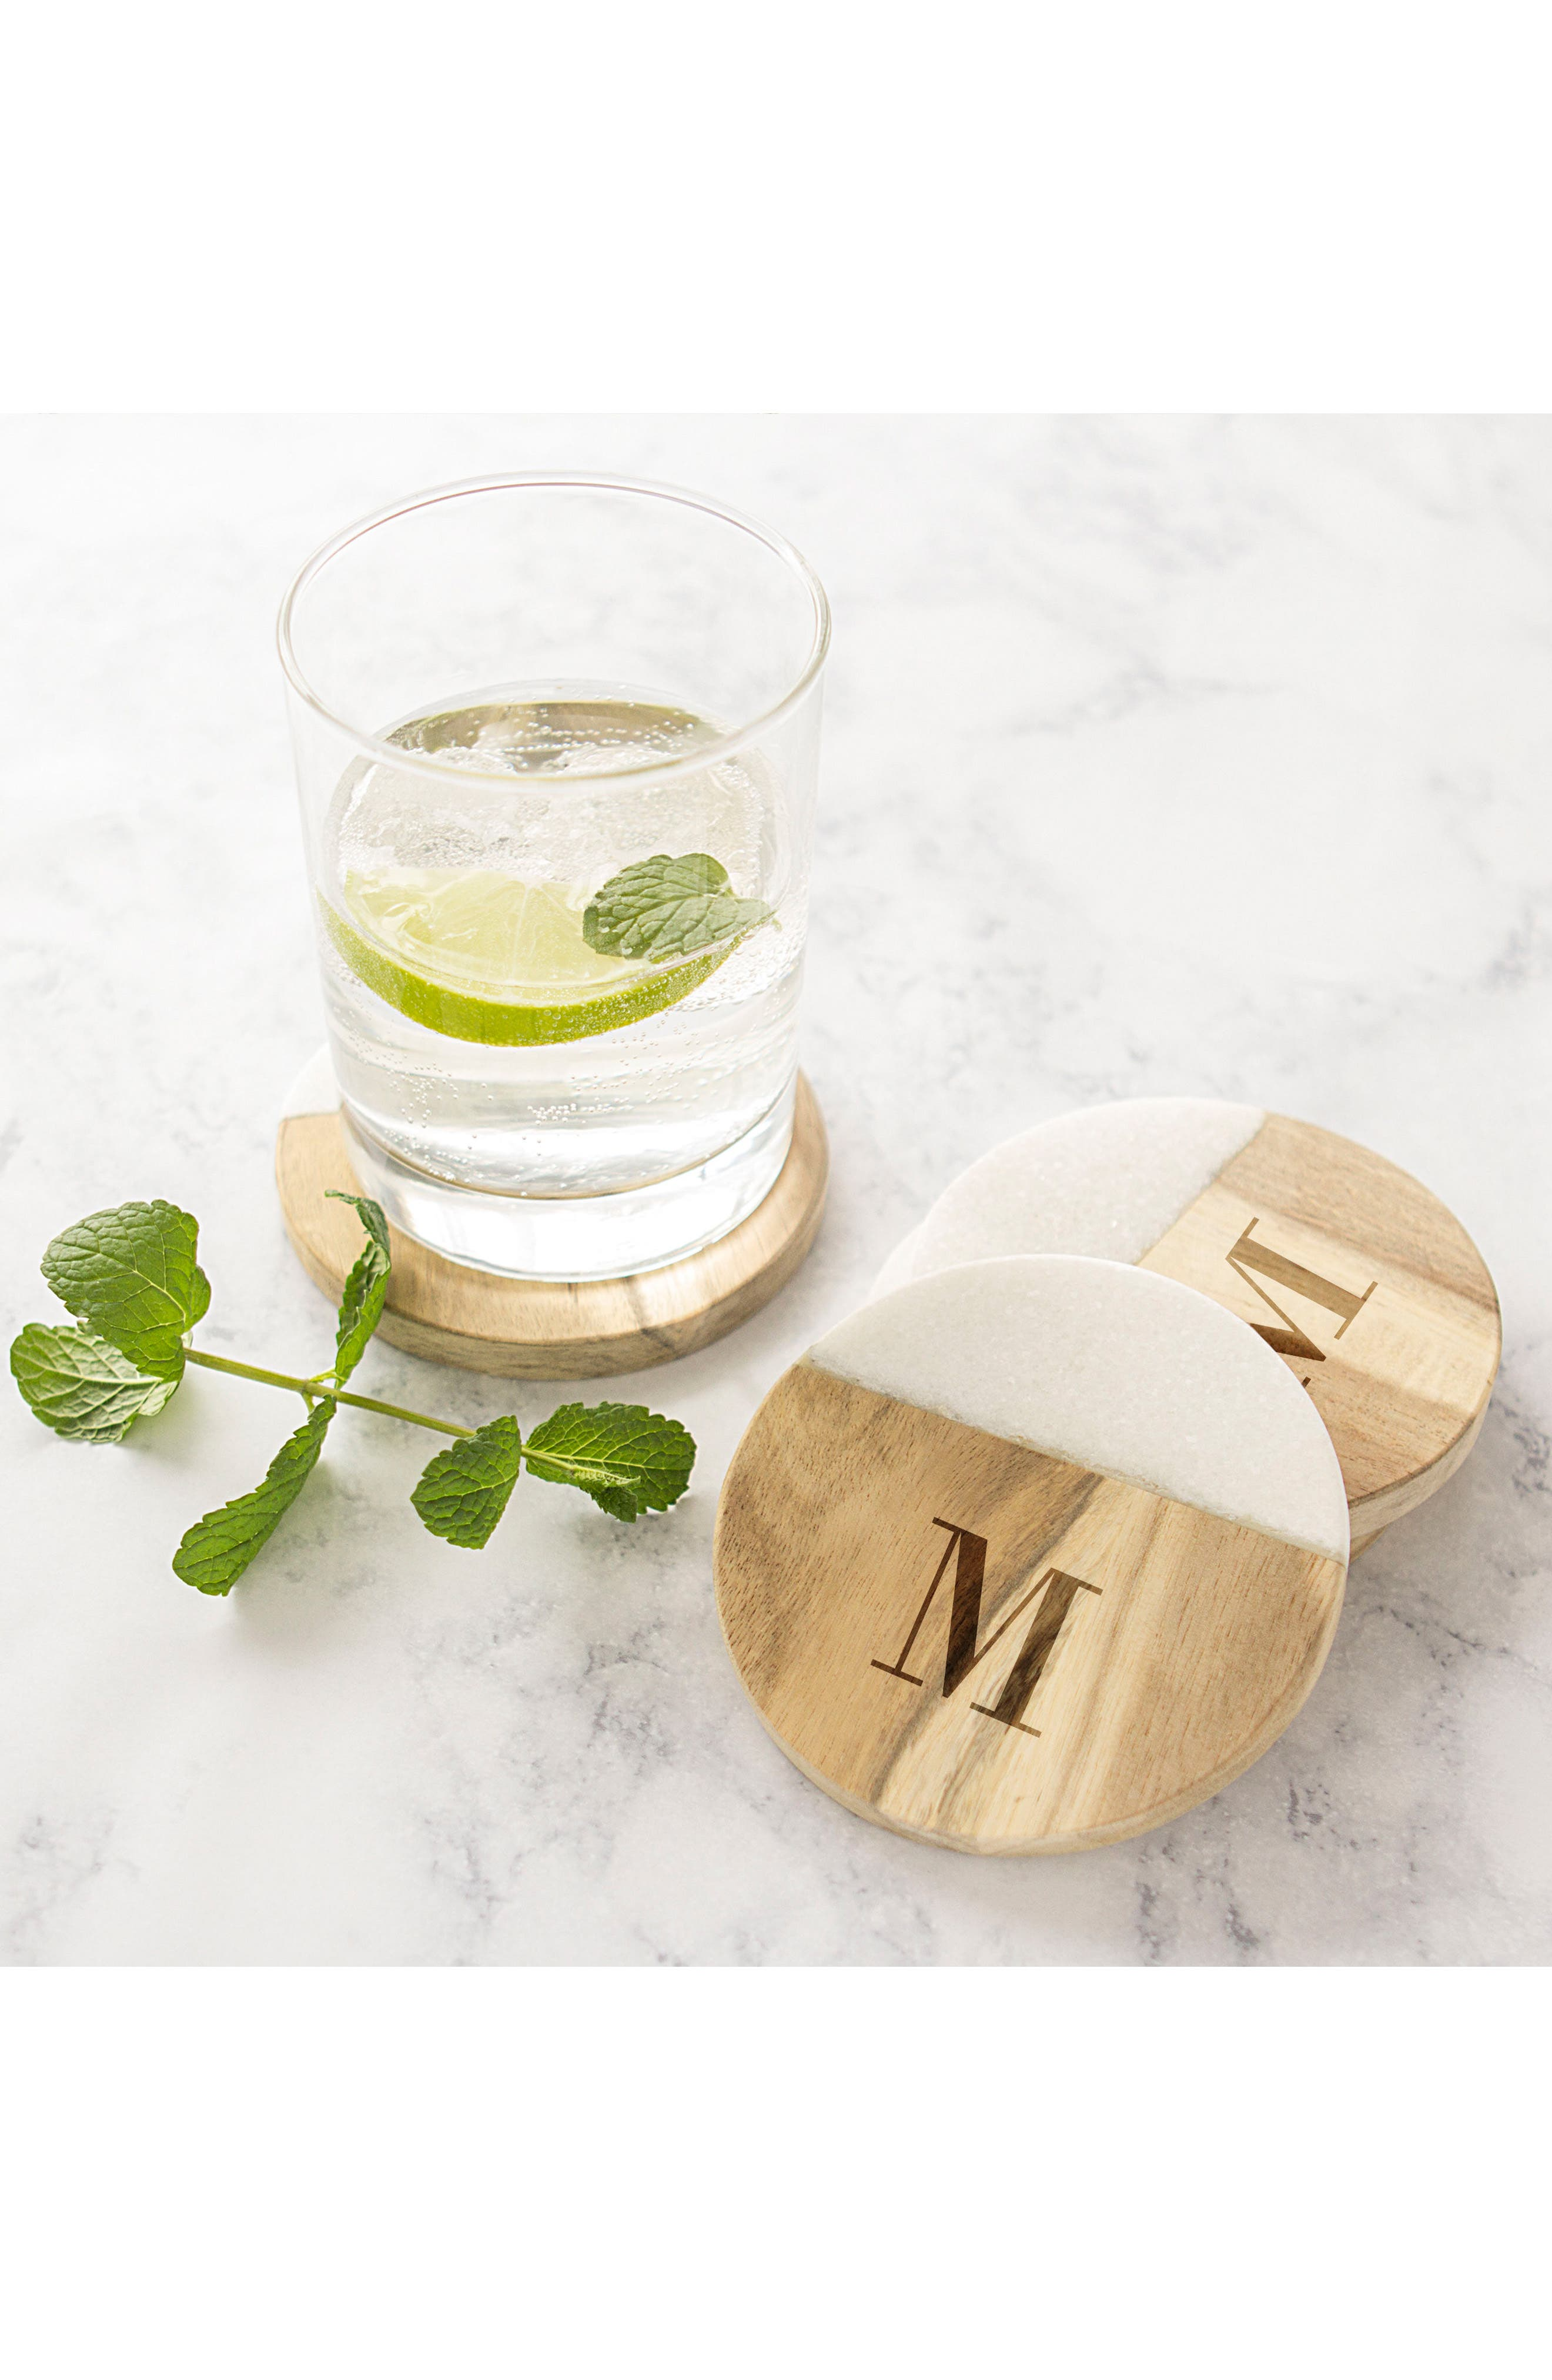 Cathy's Concepts Monogram Set of 4 Marble & Acacia Wood Coasters